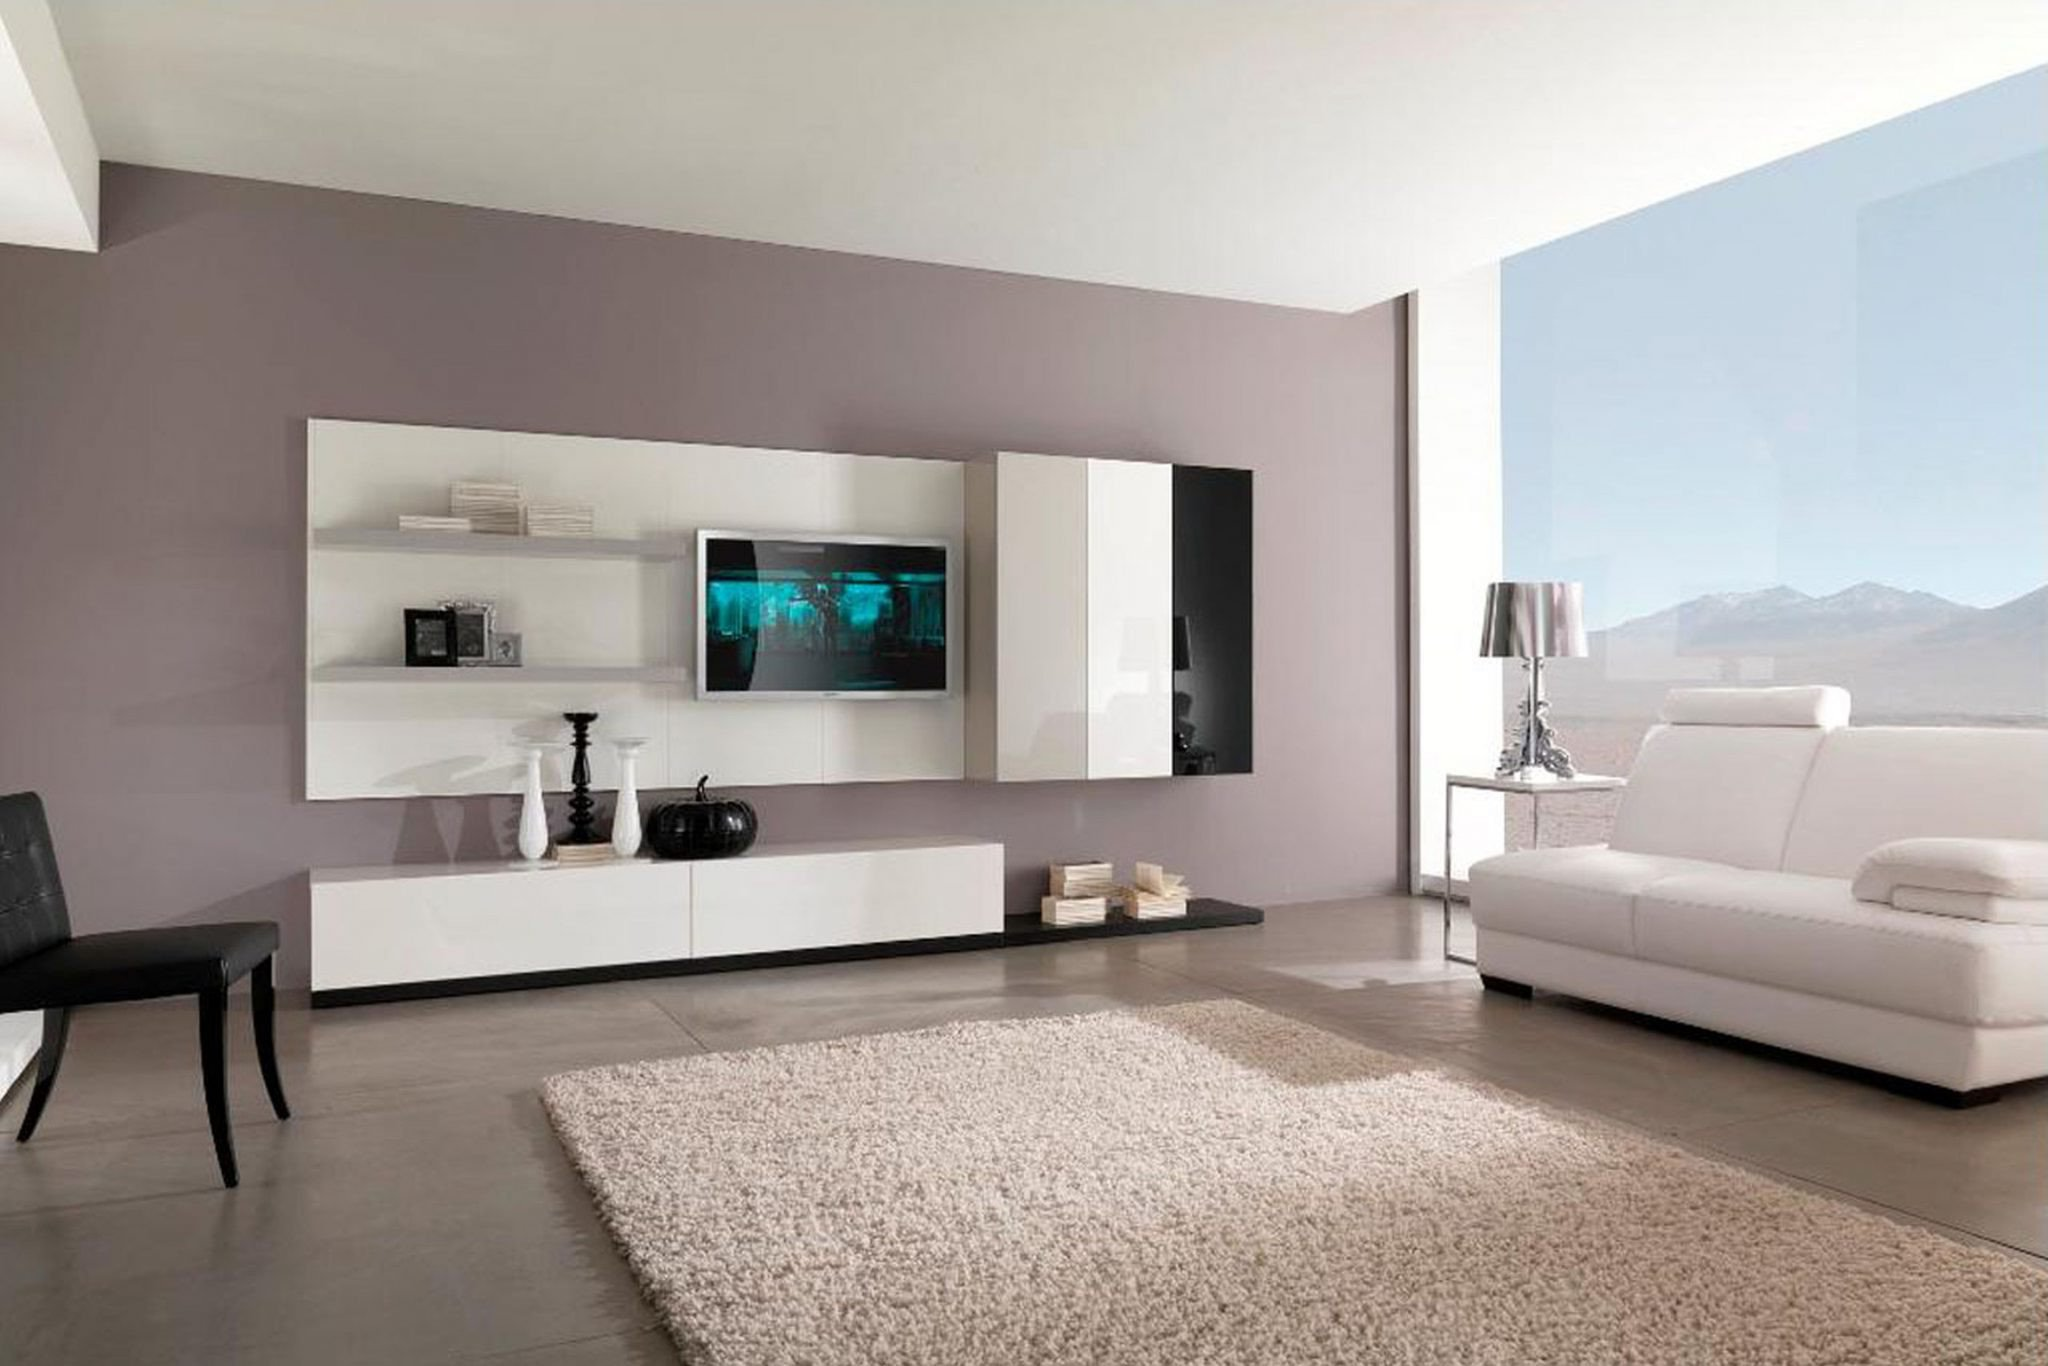 Contemporary Living Room Colors Elegant Paint Ideas for Living Room with Narrow Space theydesign theydesign